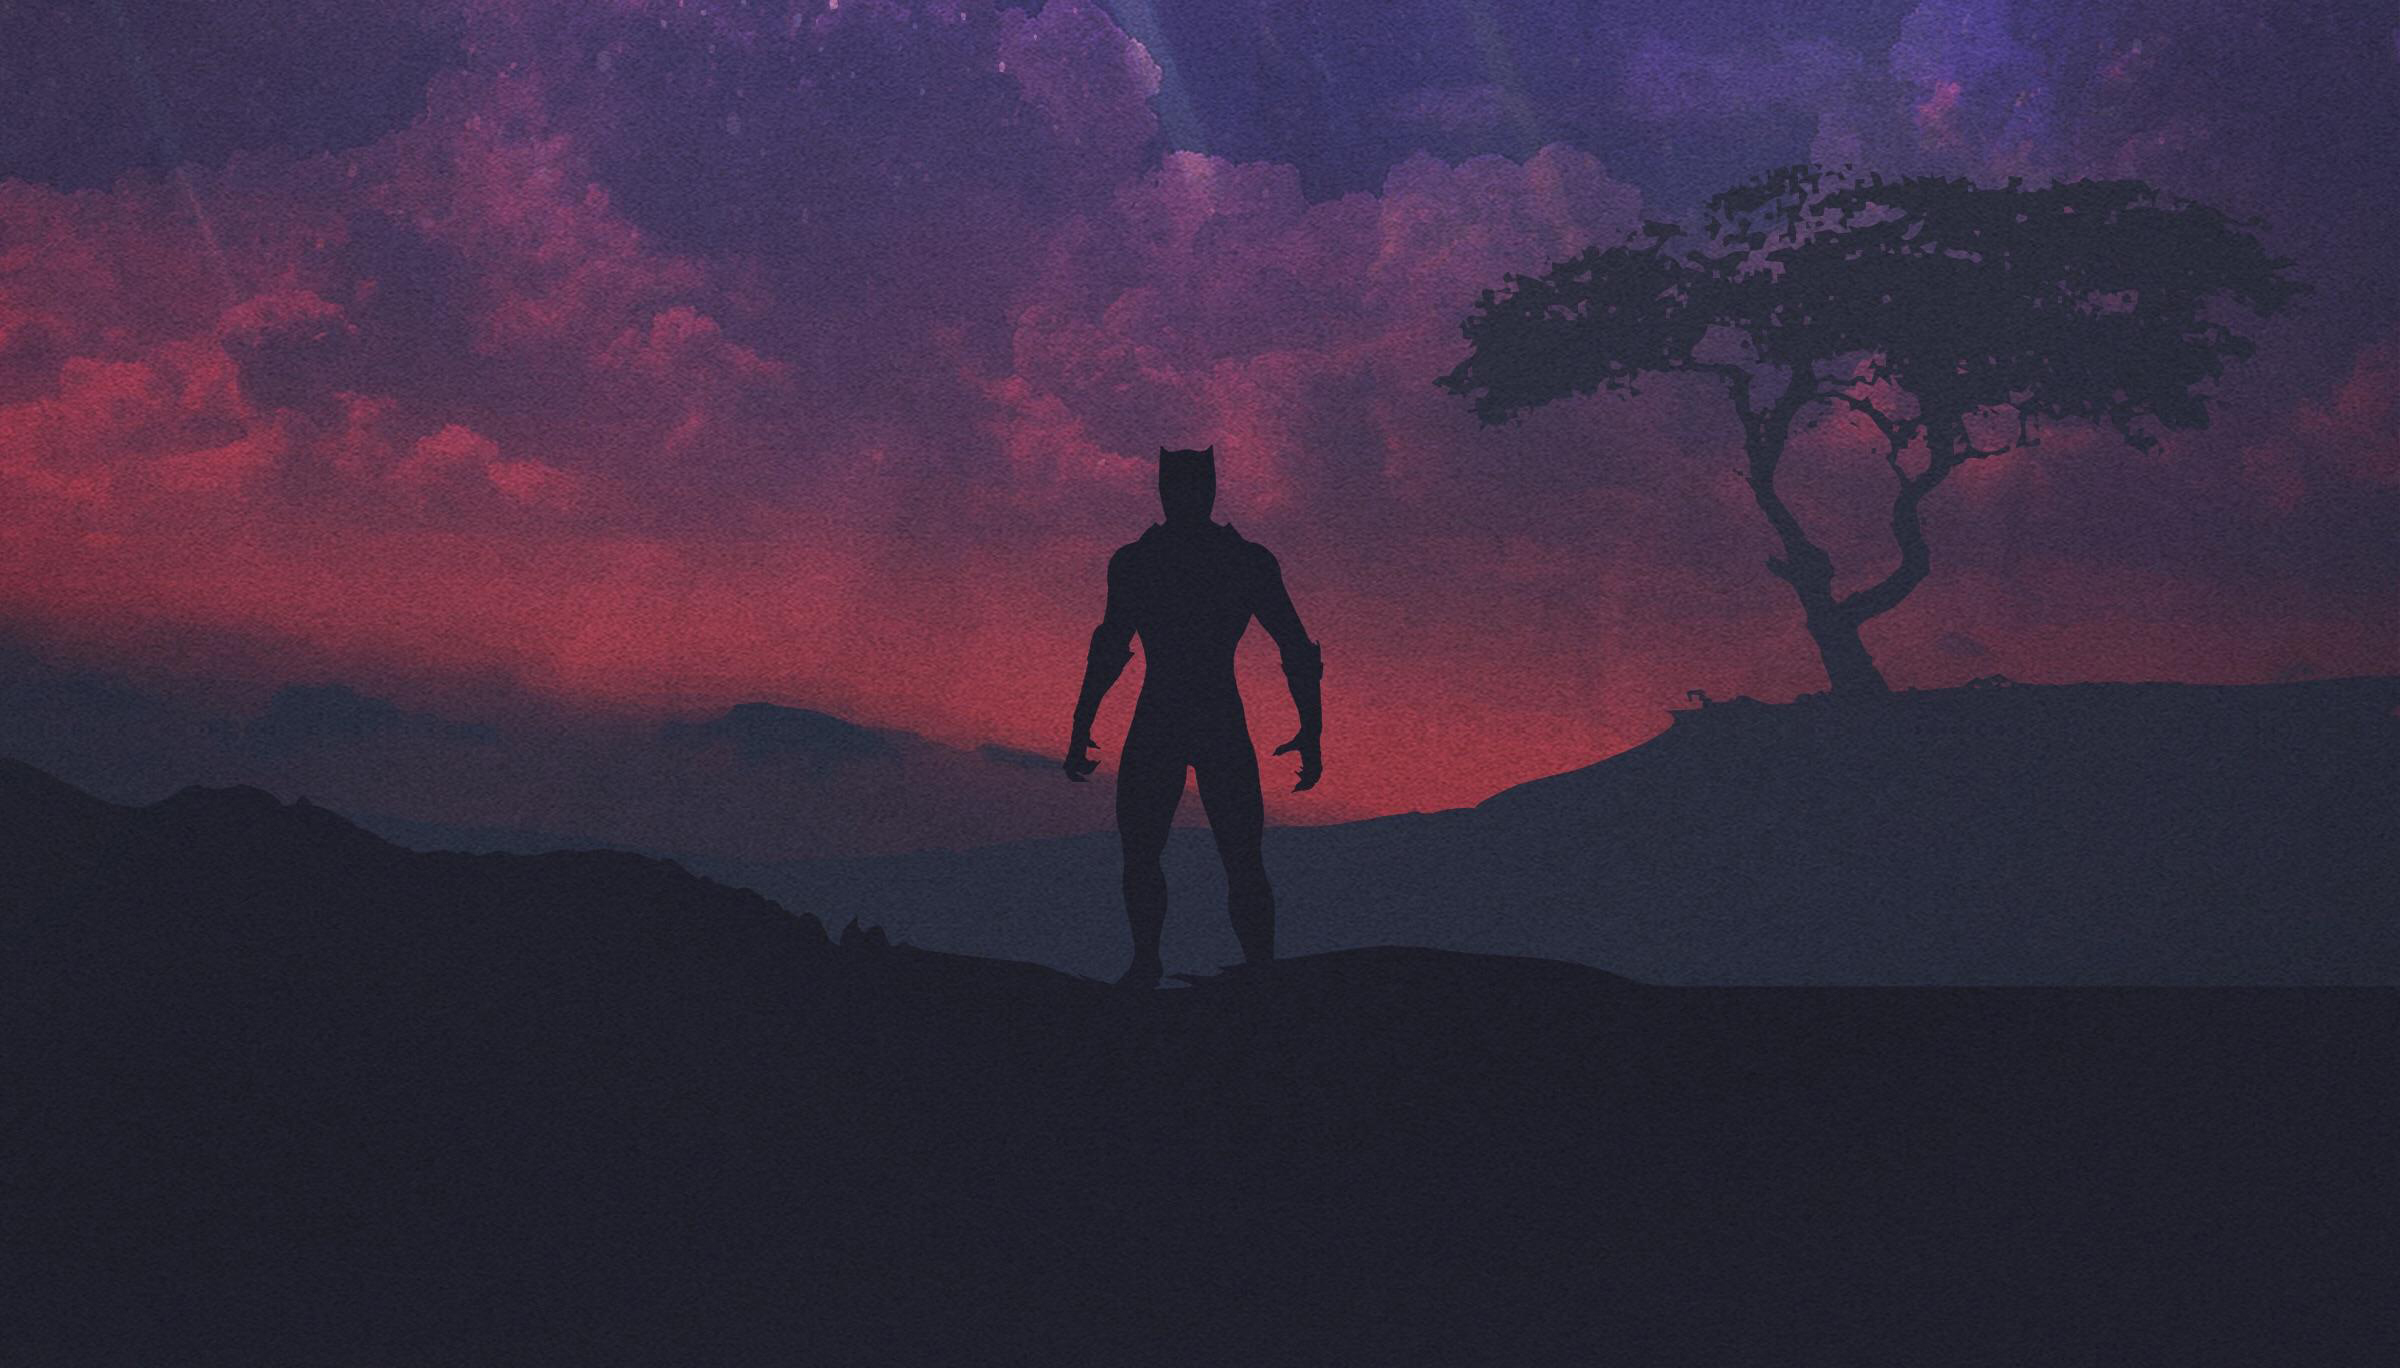 Black Panther 2018 Movie Still Full Hd Wallpaper: 1920x1080 Black Panther Movie Artwork 2018 Laptop Full HD